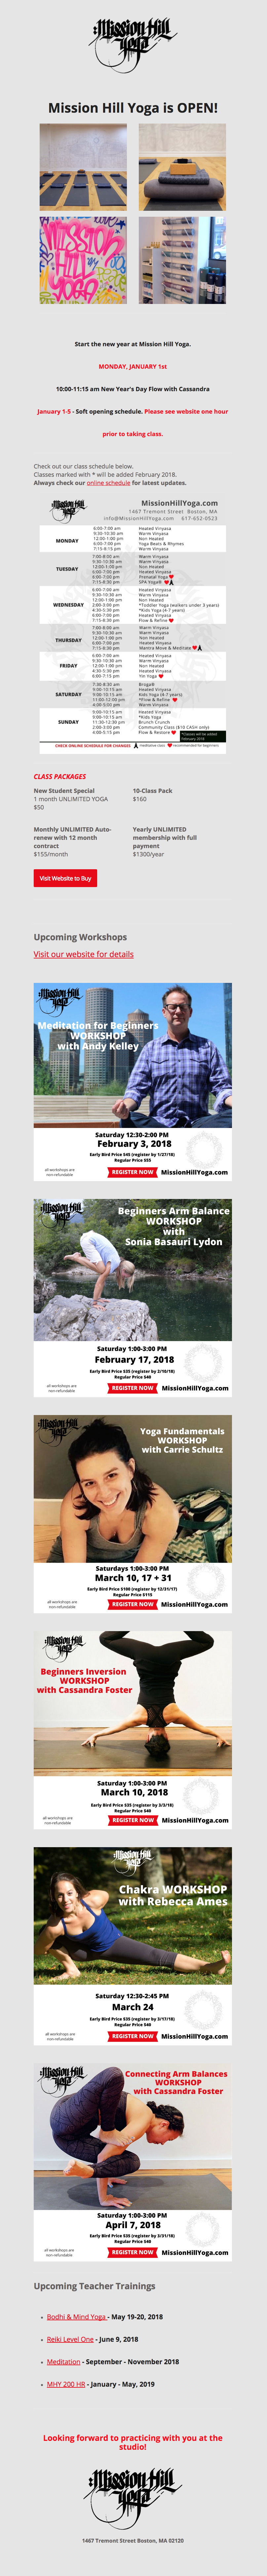 Mission Hill Yoga - studio opening newsletter